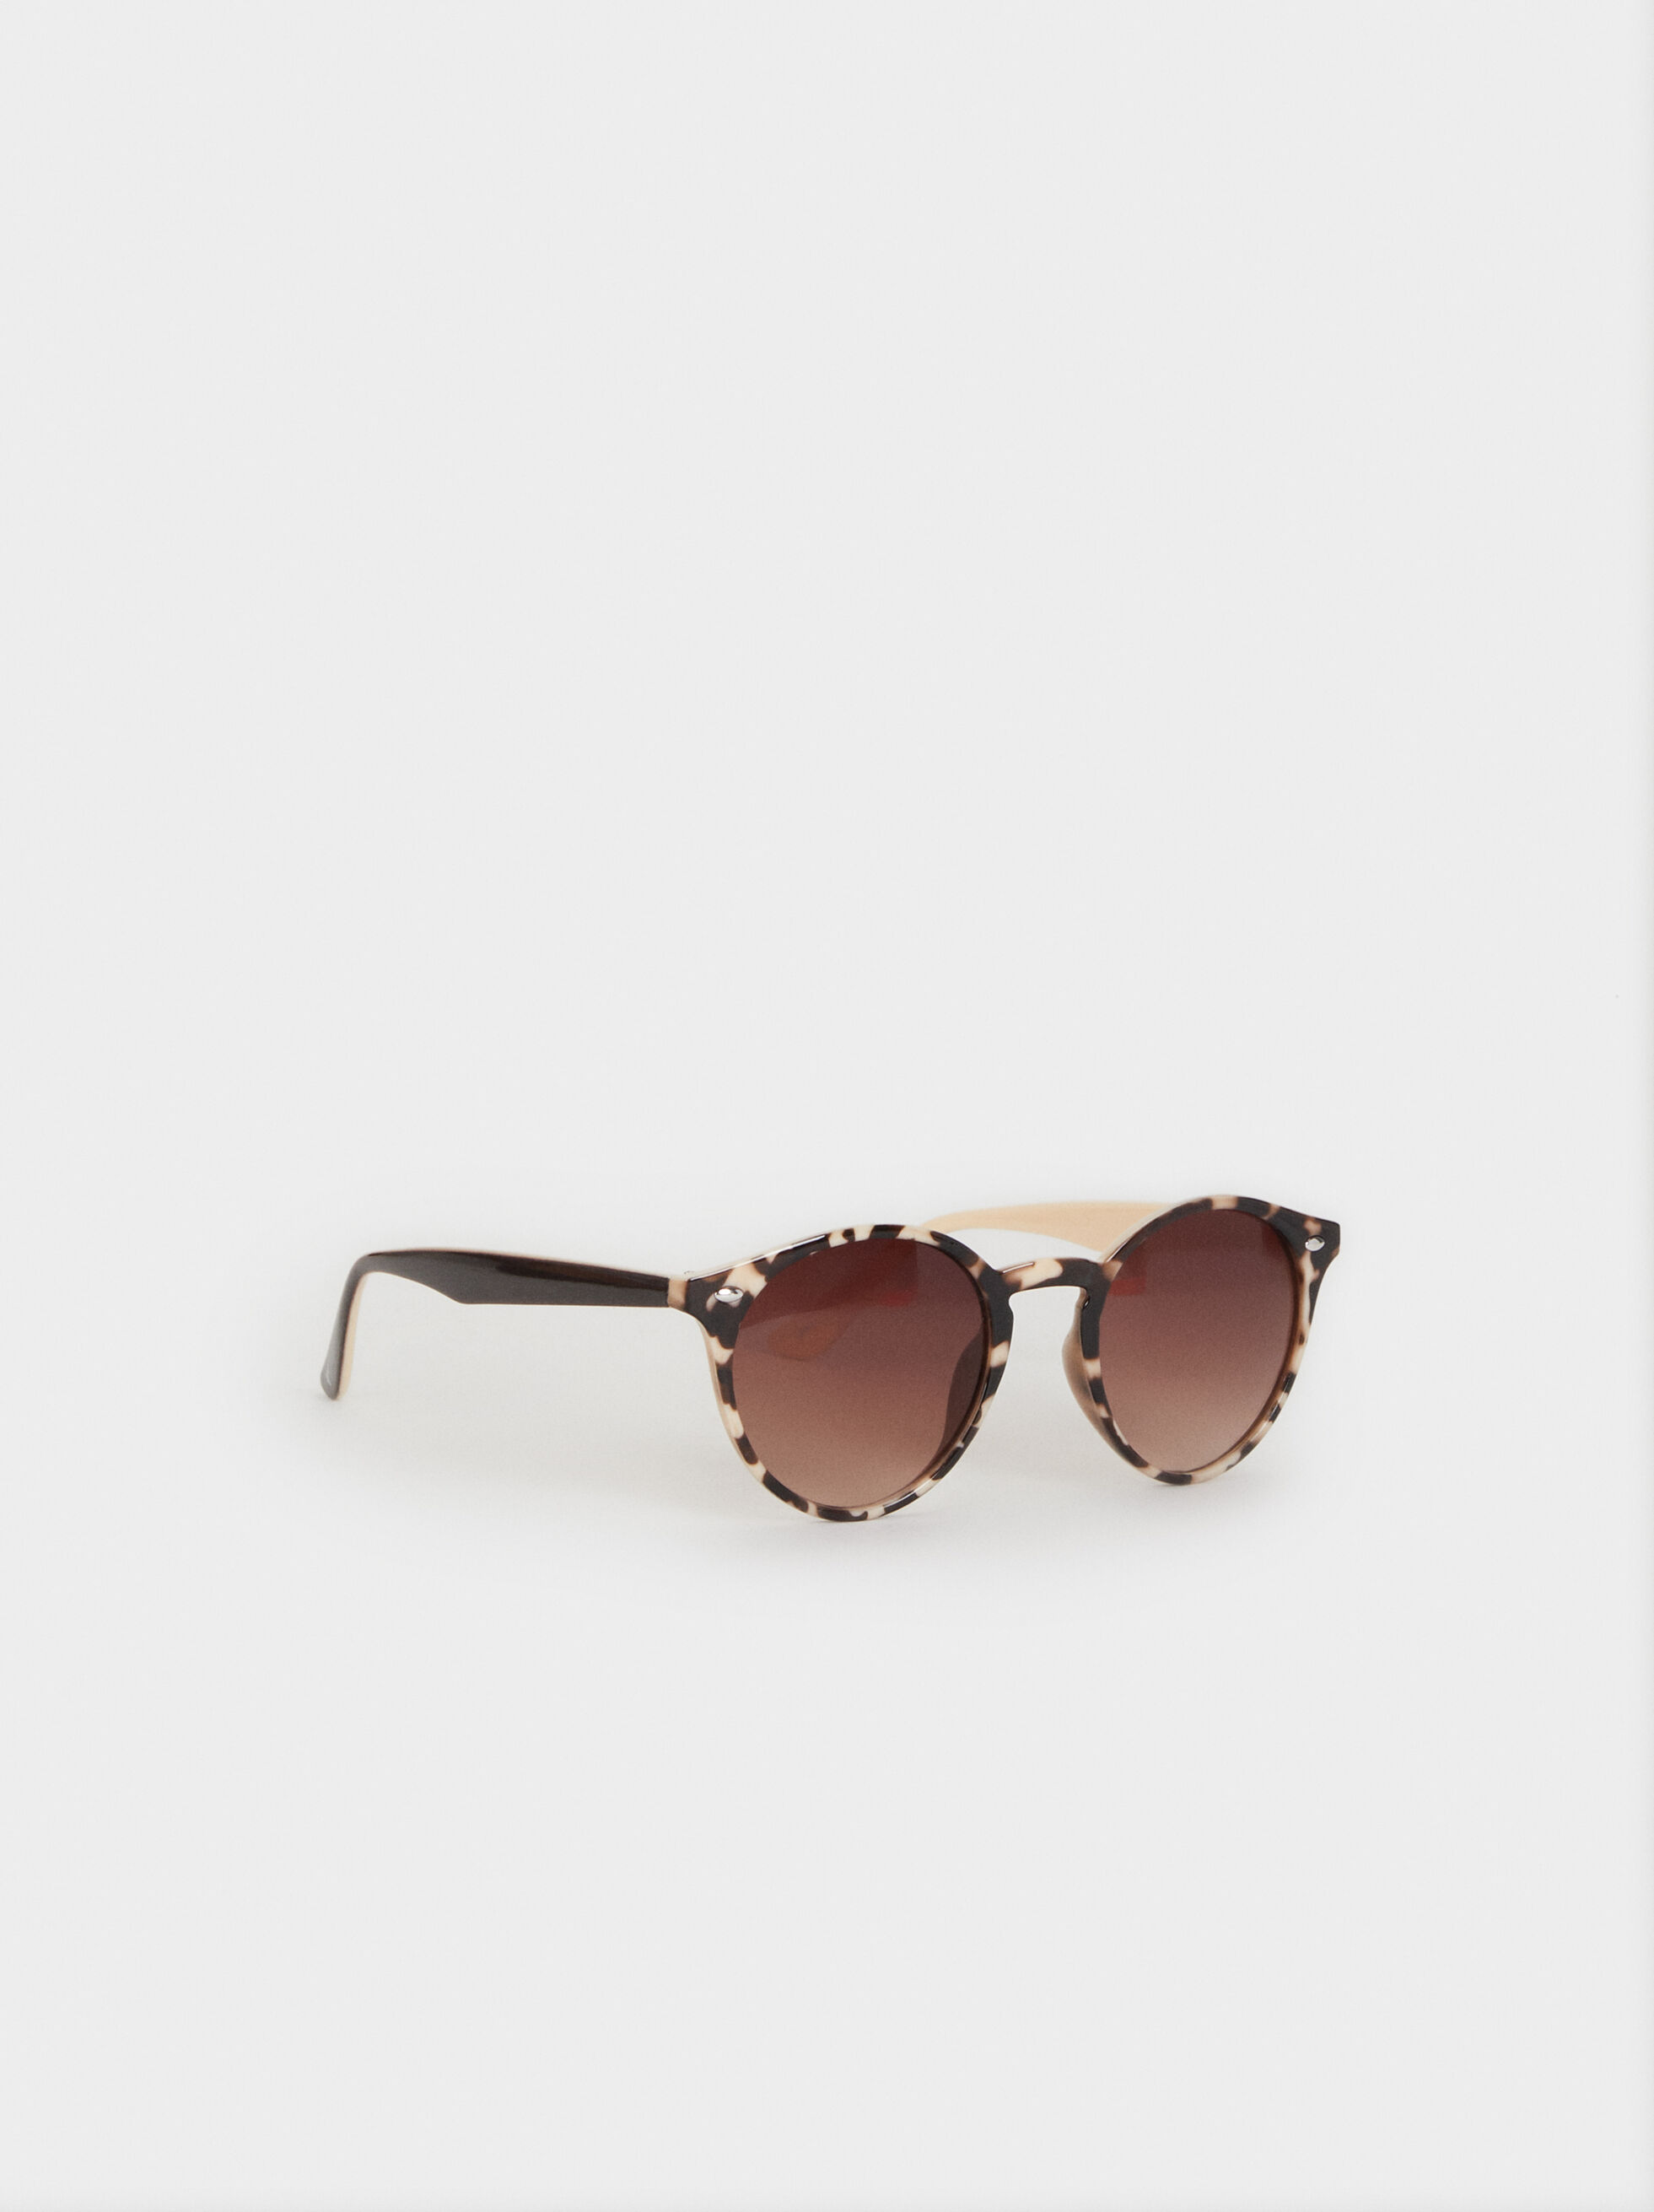 Round Sunglasses, Brown, hi-res